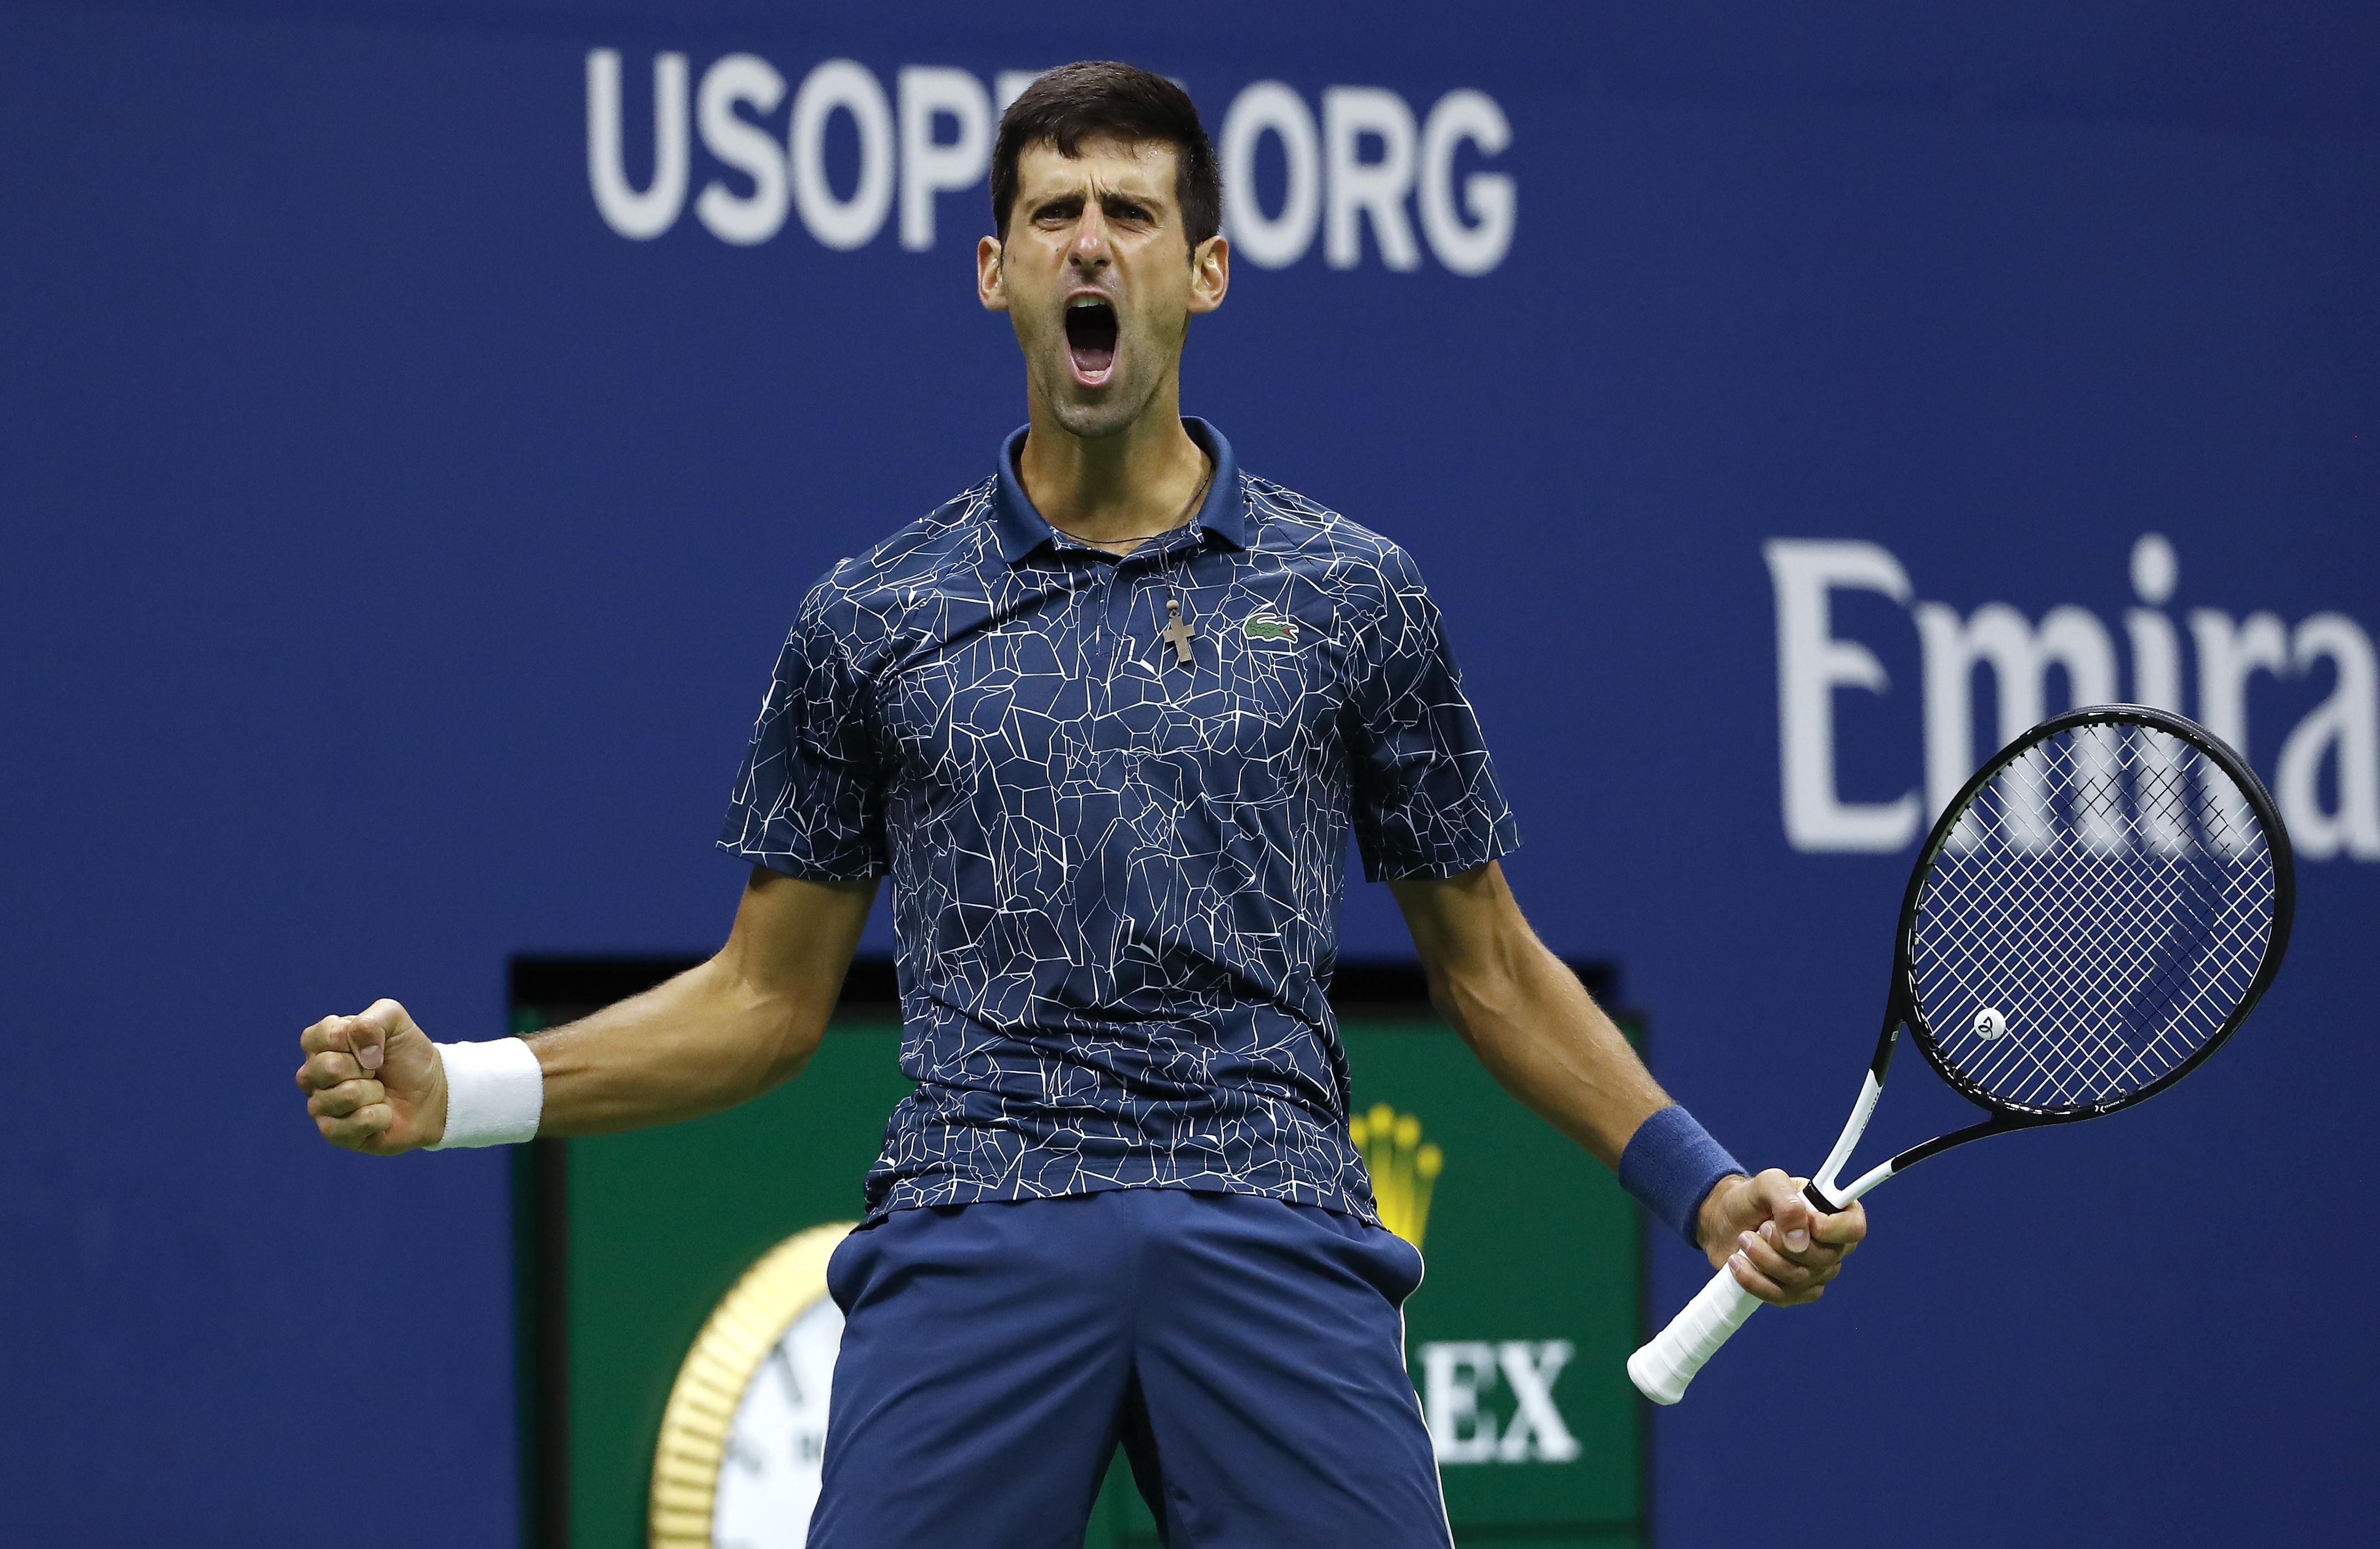 No 1 Novak Djokovic Says He Ll Play At U S Open After All Washington Times